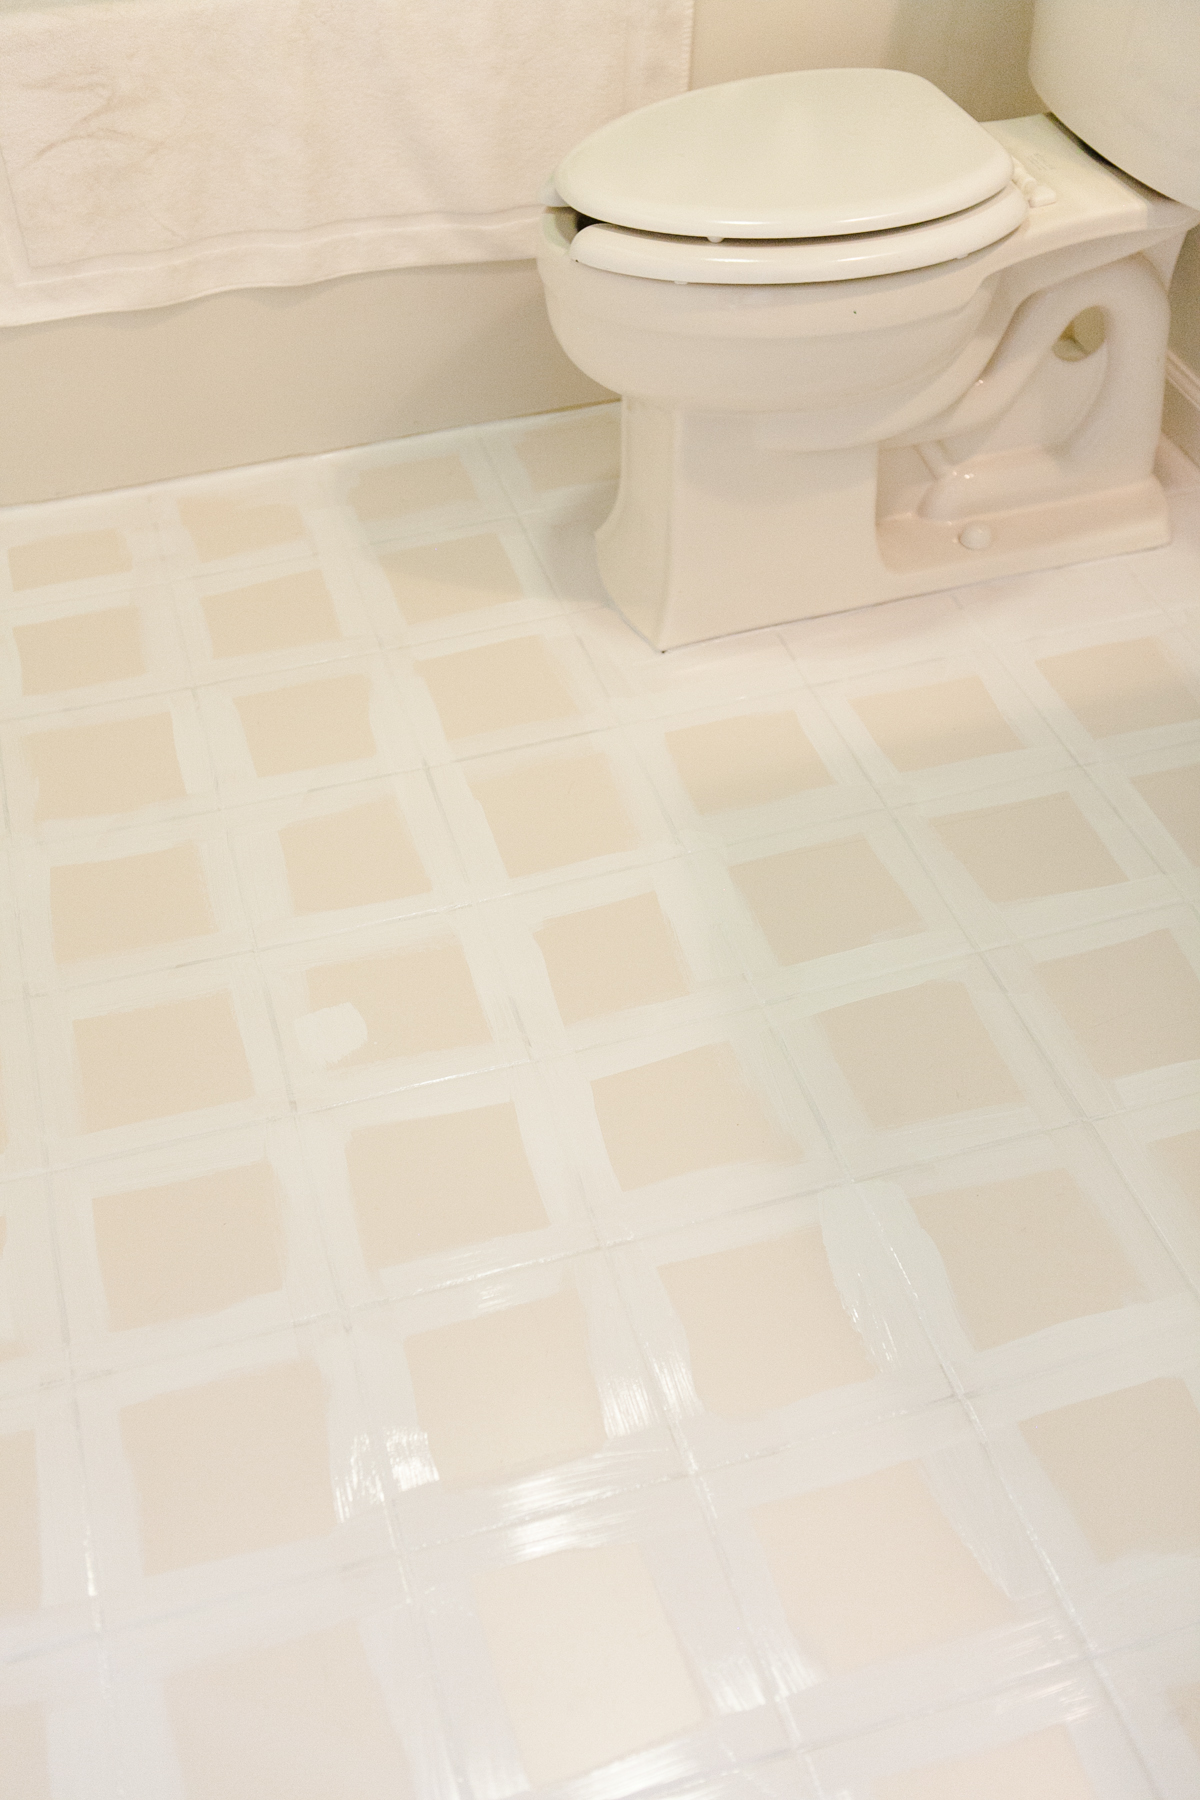 Yes You Can! How to Paint a Tile Floor | DIY Painted Tile Floor | Jessica Brigham | Magazine Ready for Life